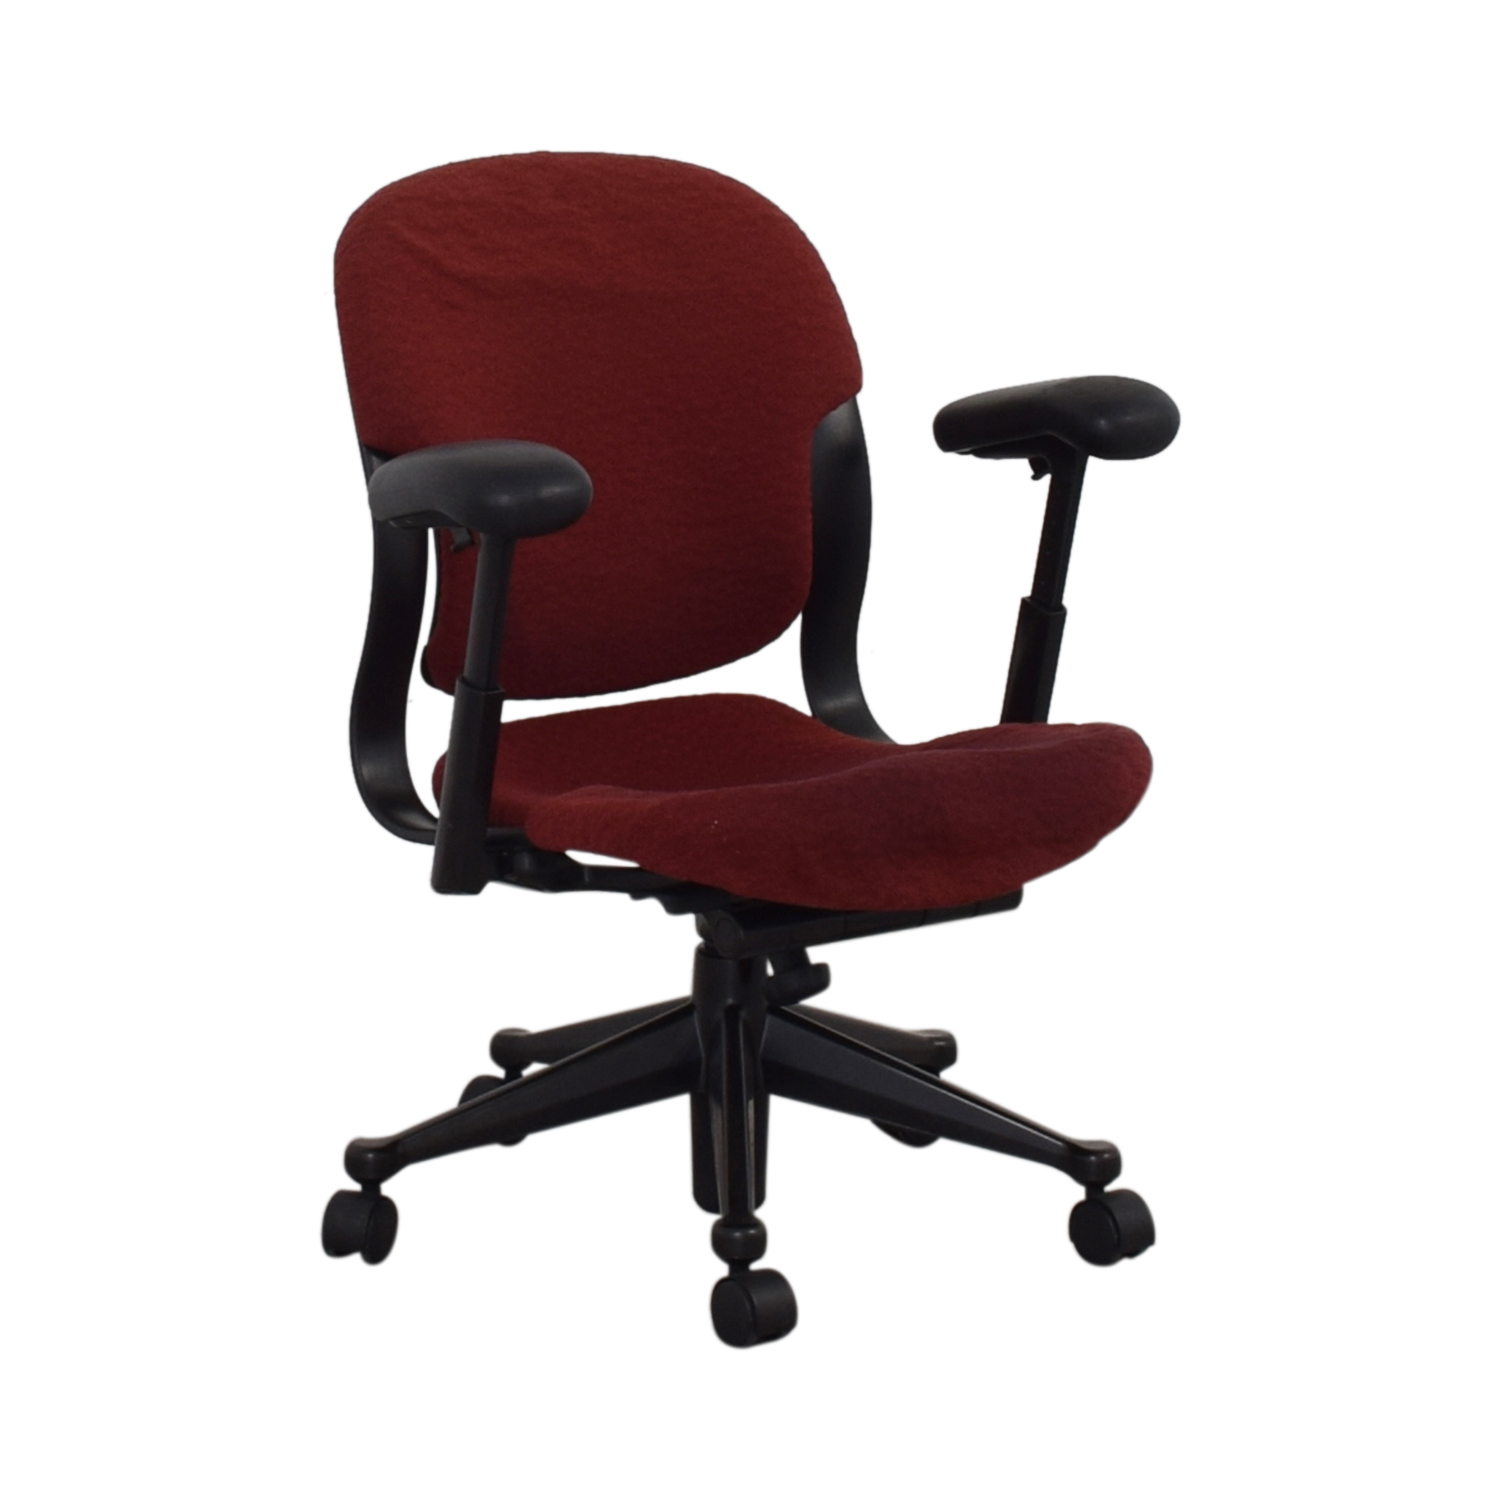 Red Office Arm Chair on sale